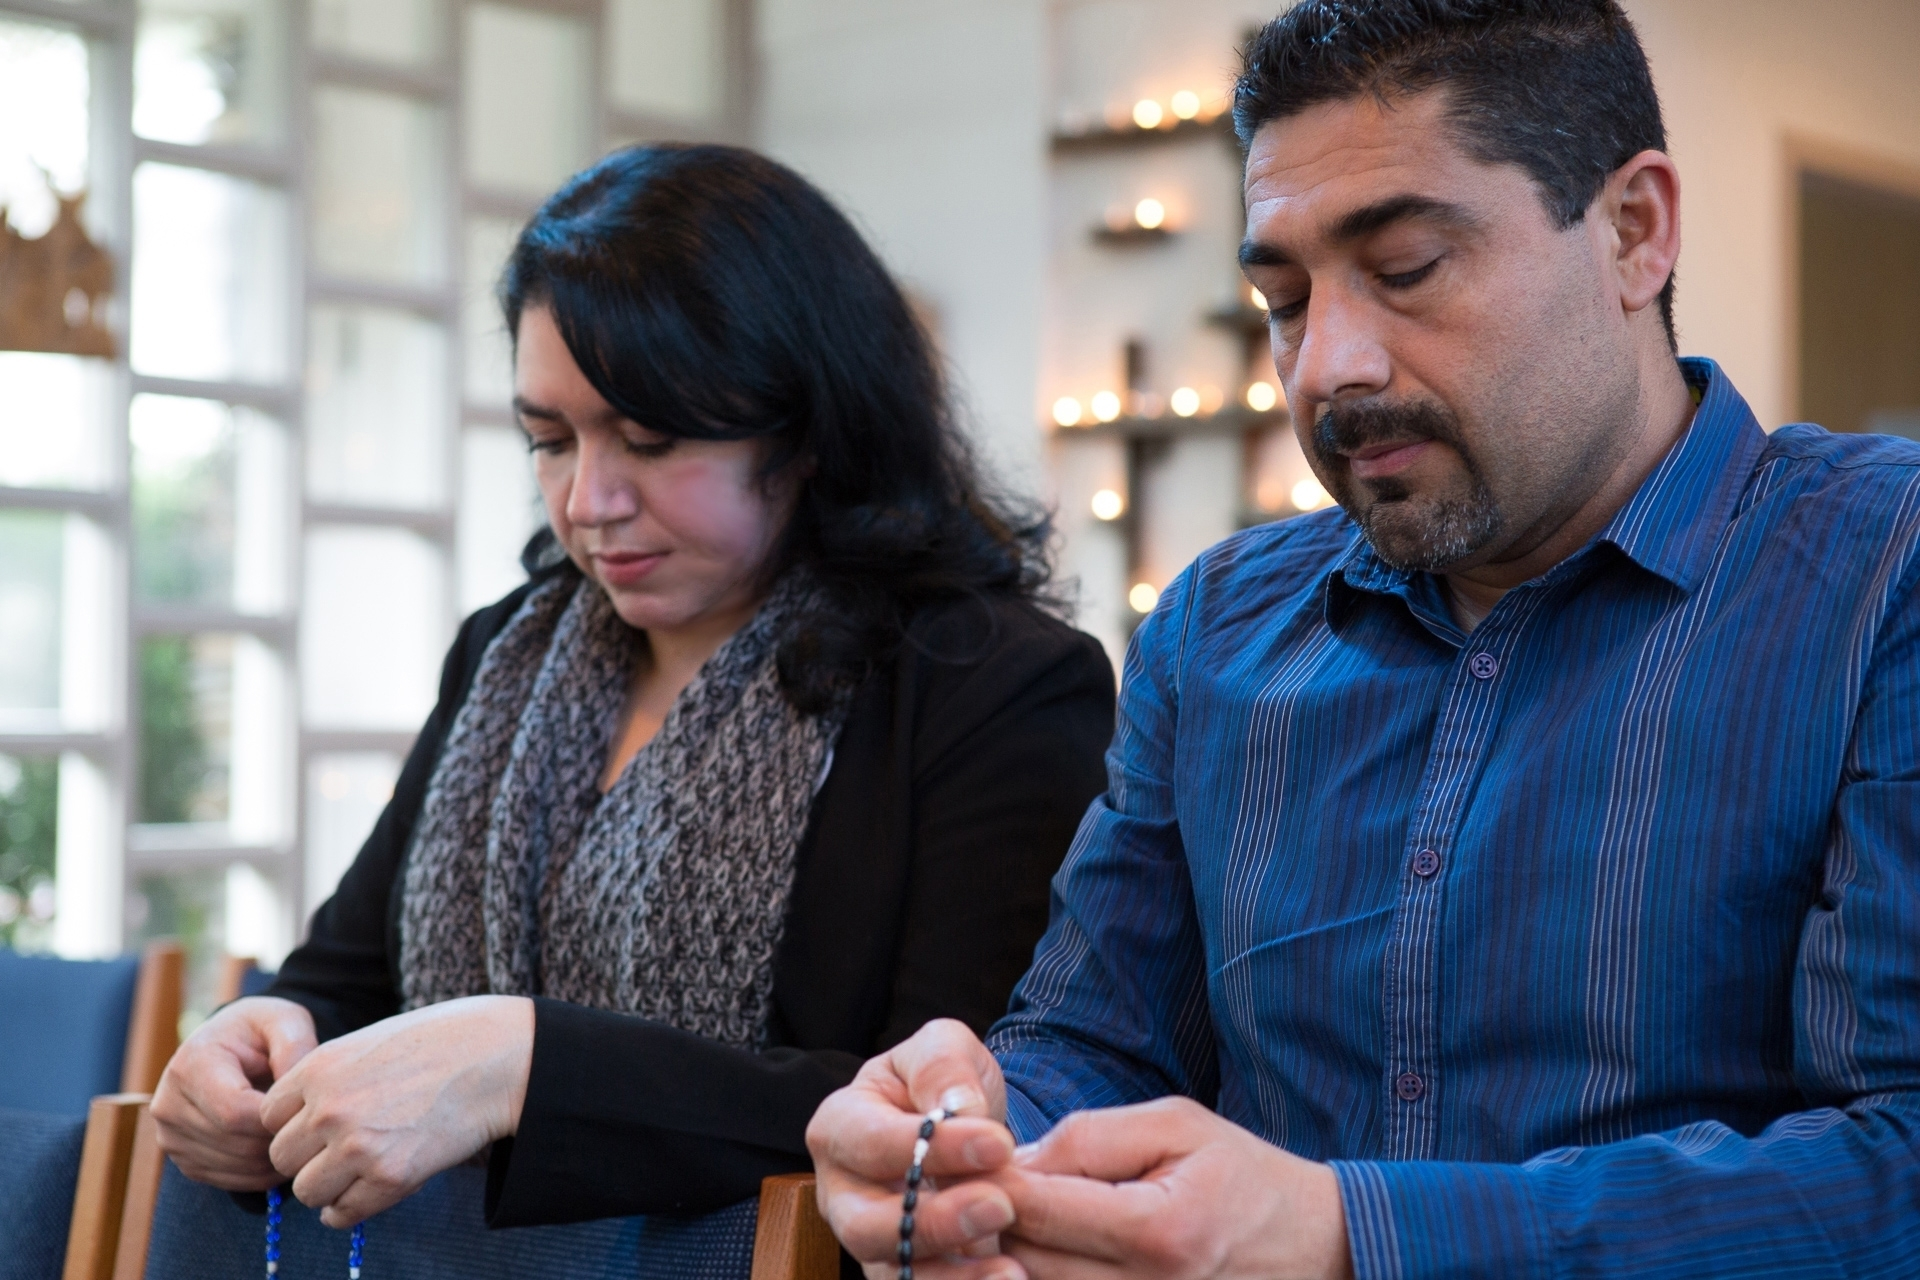 Hispanic man women couple mass praying rosary diversity Palisades Chapel retreat center